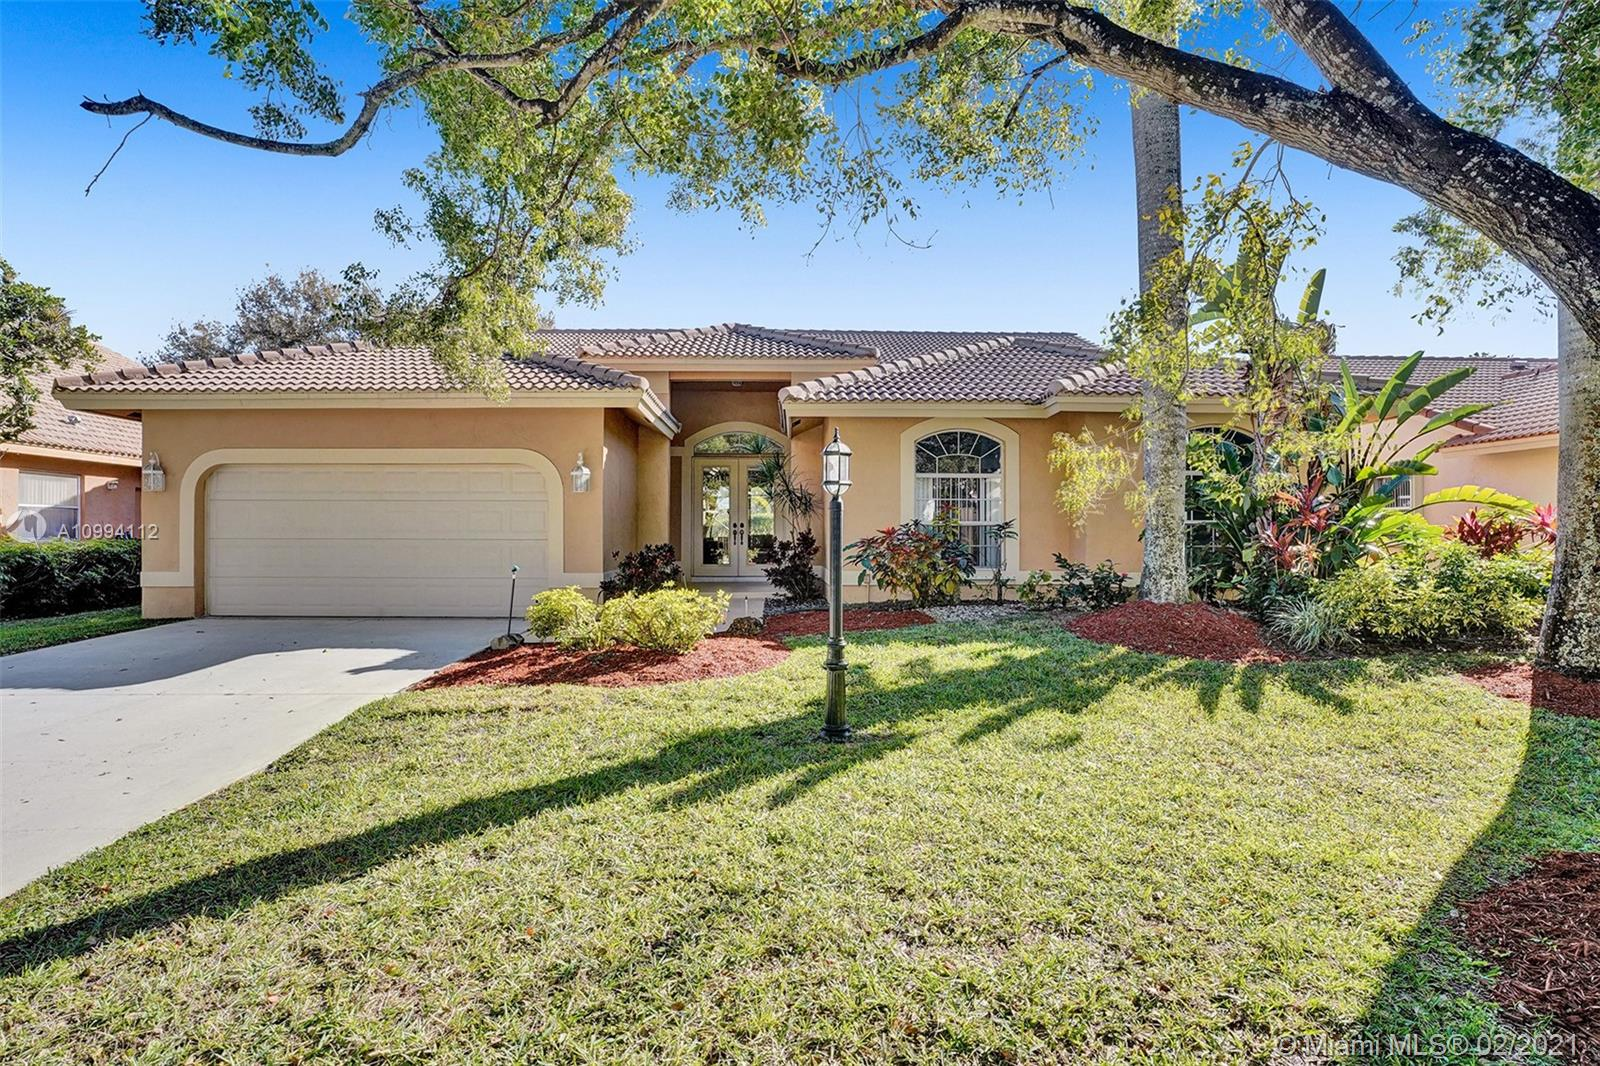 WOW! GREAT BUY ON THIS ONE OWNER HOME WITH PRIDE OF OWNERSHIP ON A WATERFRONT LOT IN 24-HOUR GUARD GATED HIDDEN HAMMOCKS ESTATES! QUIET TREE LINED STREET! NEW ROOF 2018! PLEASE SEE FACT SHEET!